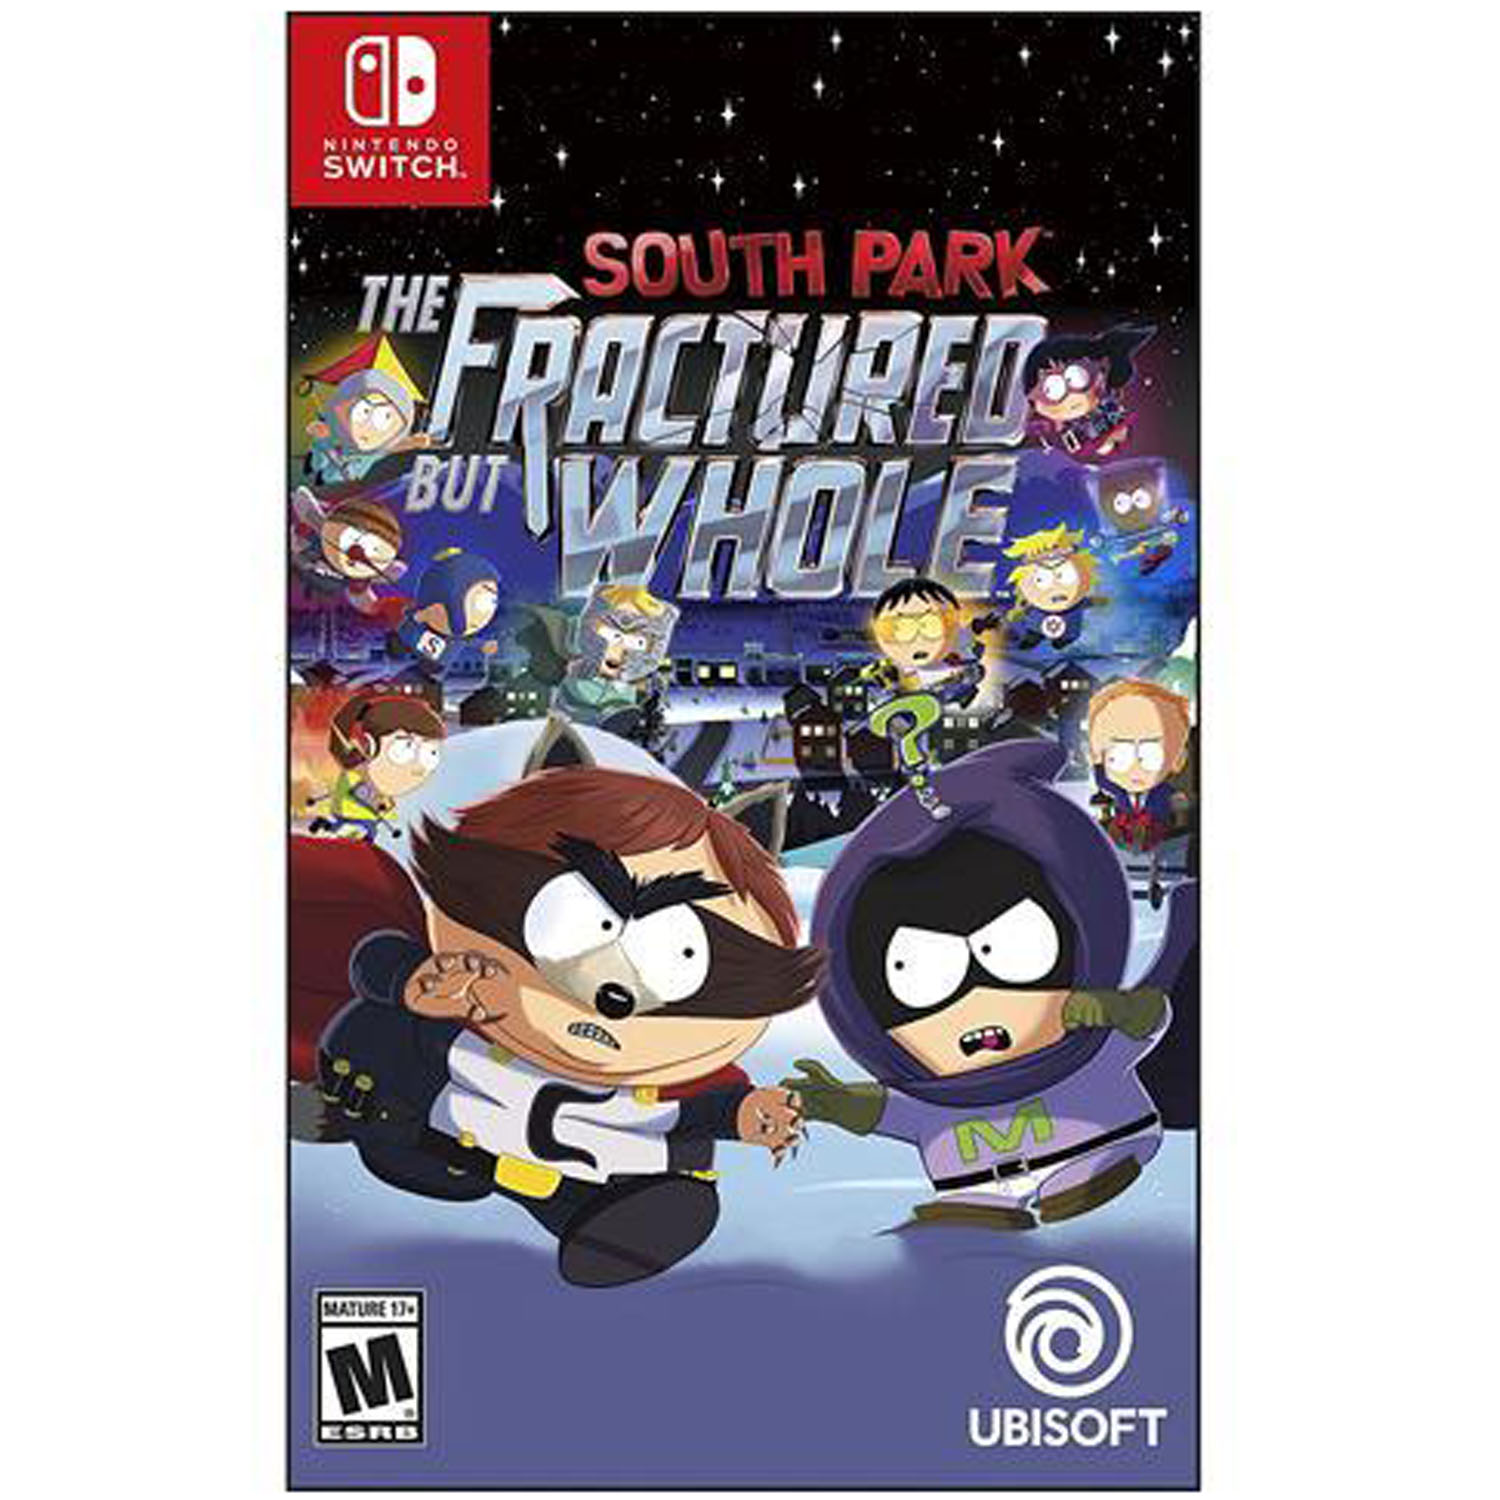 South Park: The Fractured But Whole, Ubisoft, Nintendo Switch, 887256033675